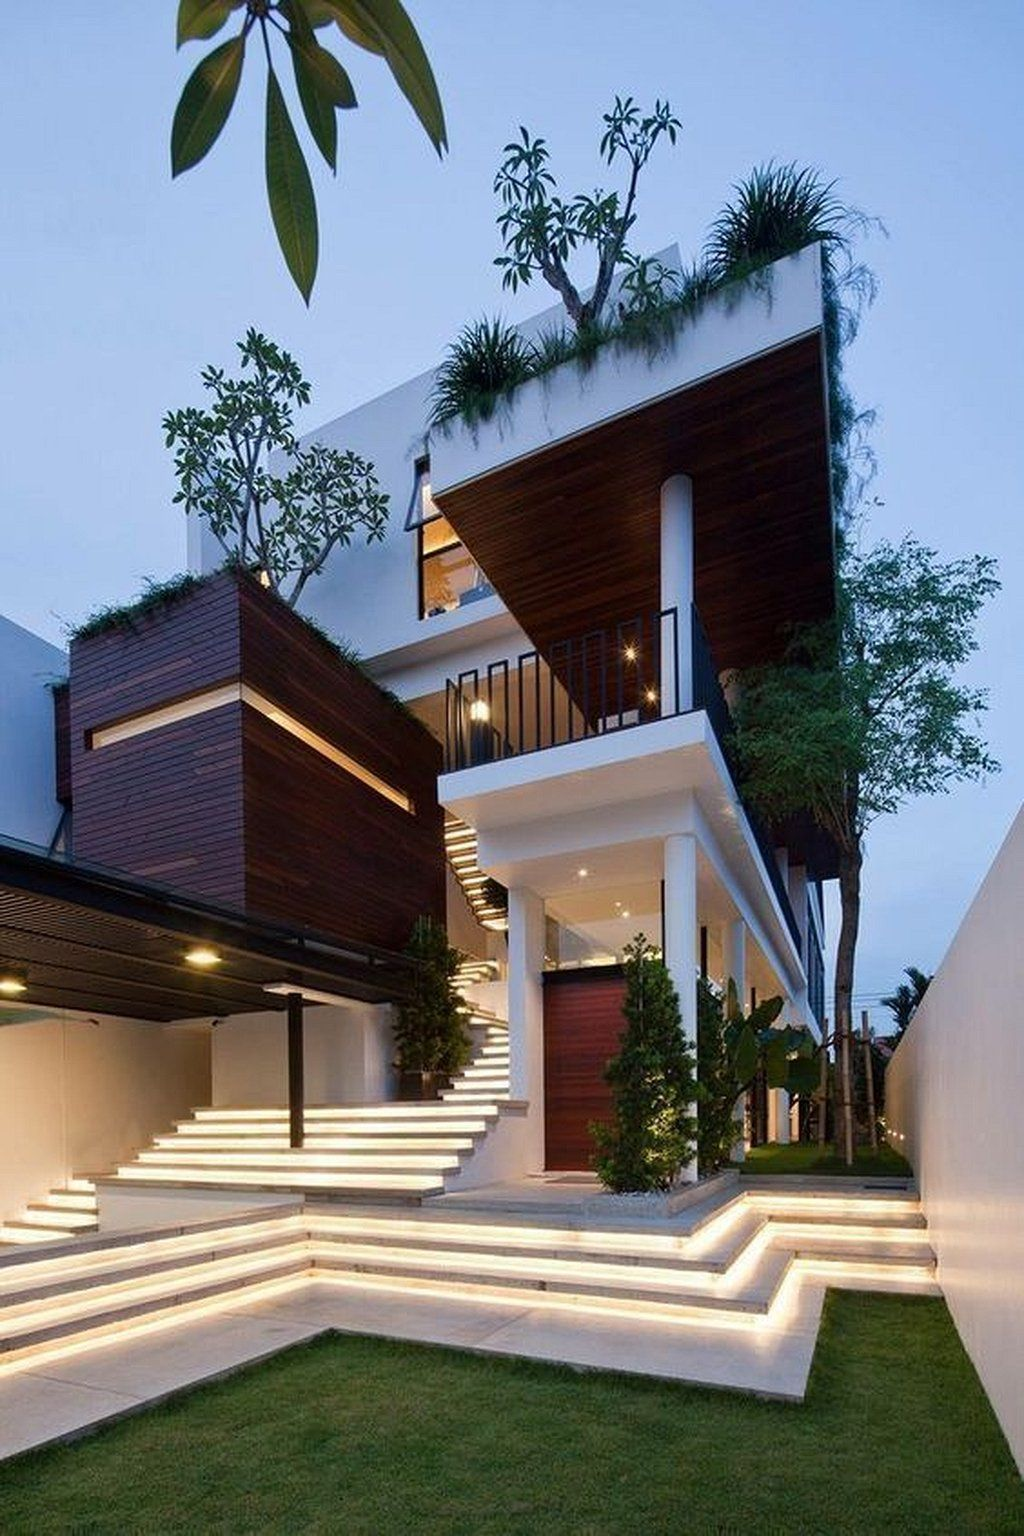 21 The Most Unique Modern Home Design In The World New Dream House Exterior House Exterior House Designs Exterior